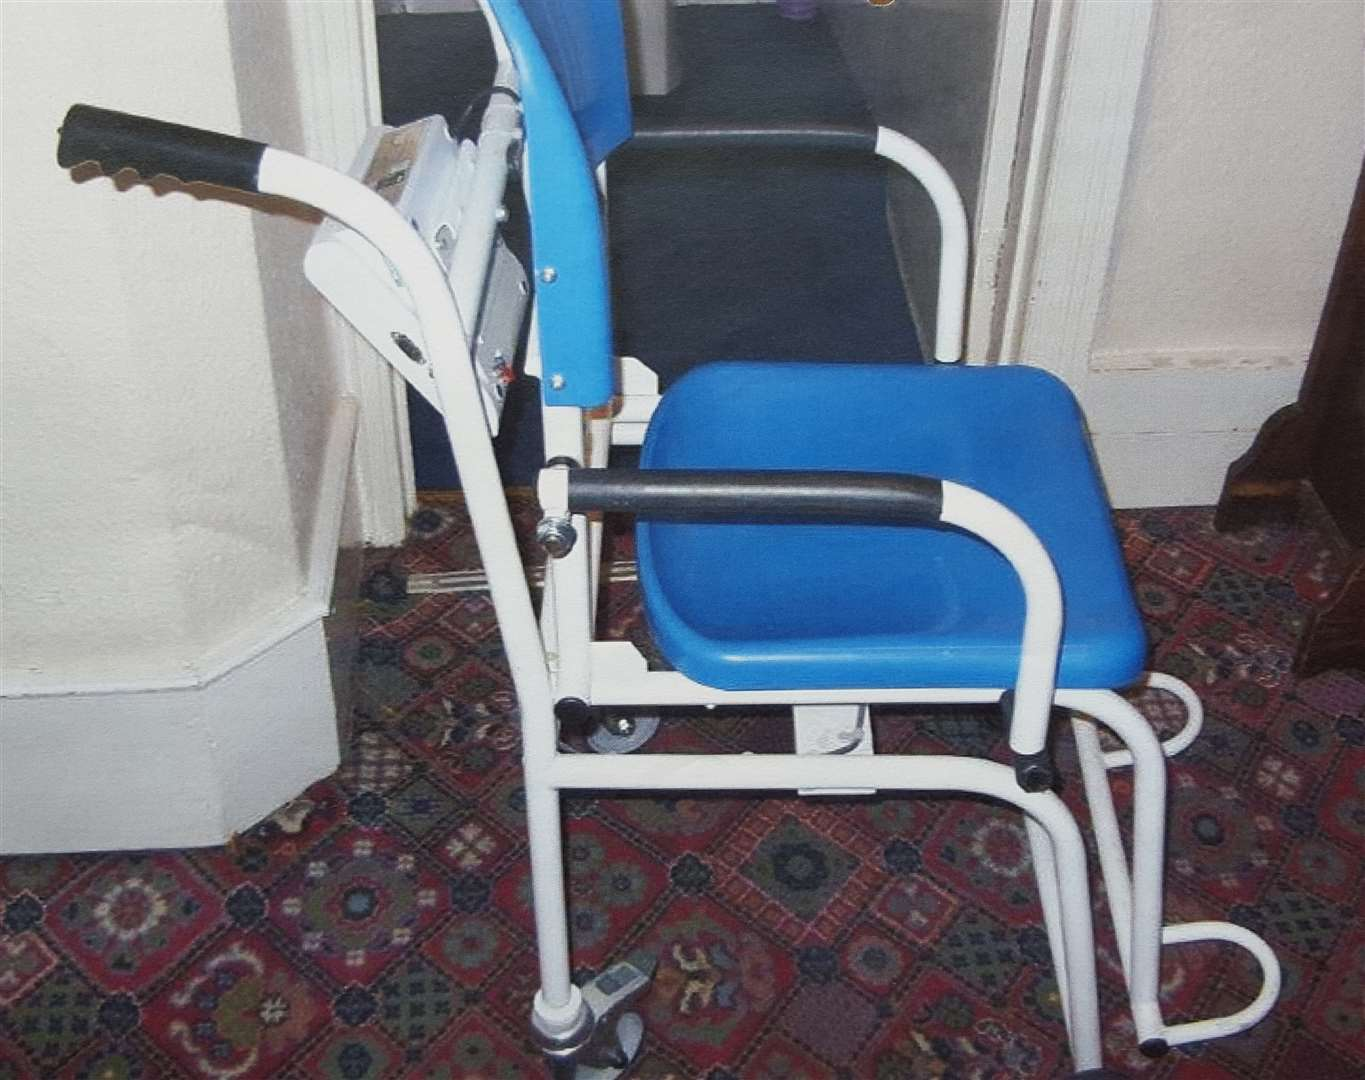 The weighing chair which trapped Joan Daws in the lift